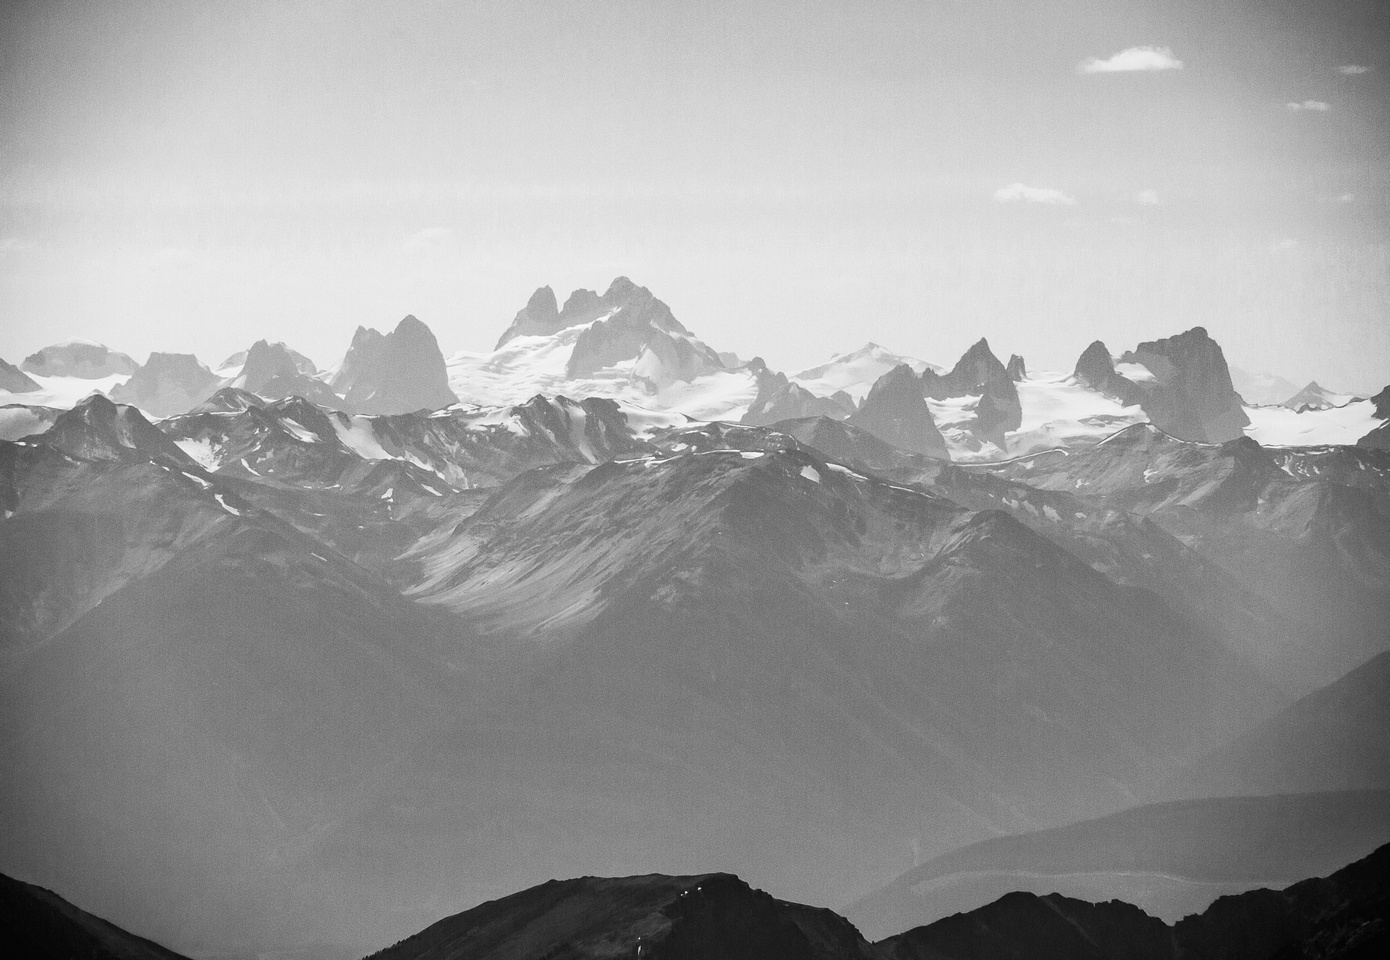 The Bugaboos are visible through haze to the west including the Howser Spires, Bugaboo Spire and Snowpatch Spire.